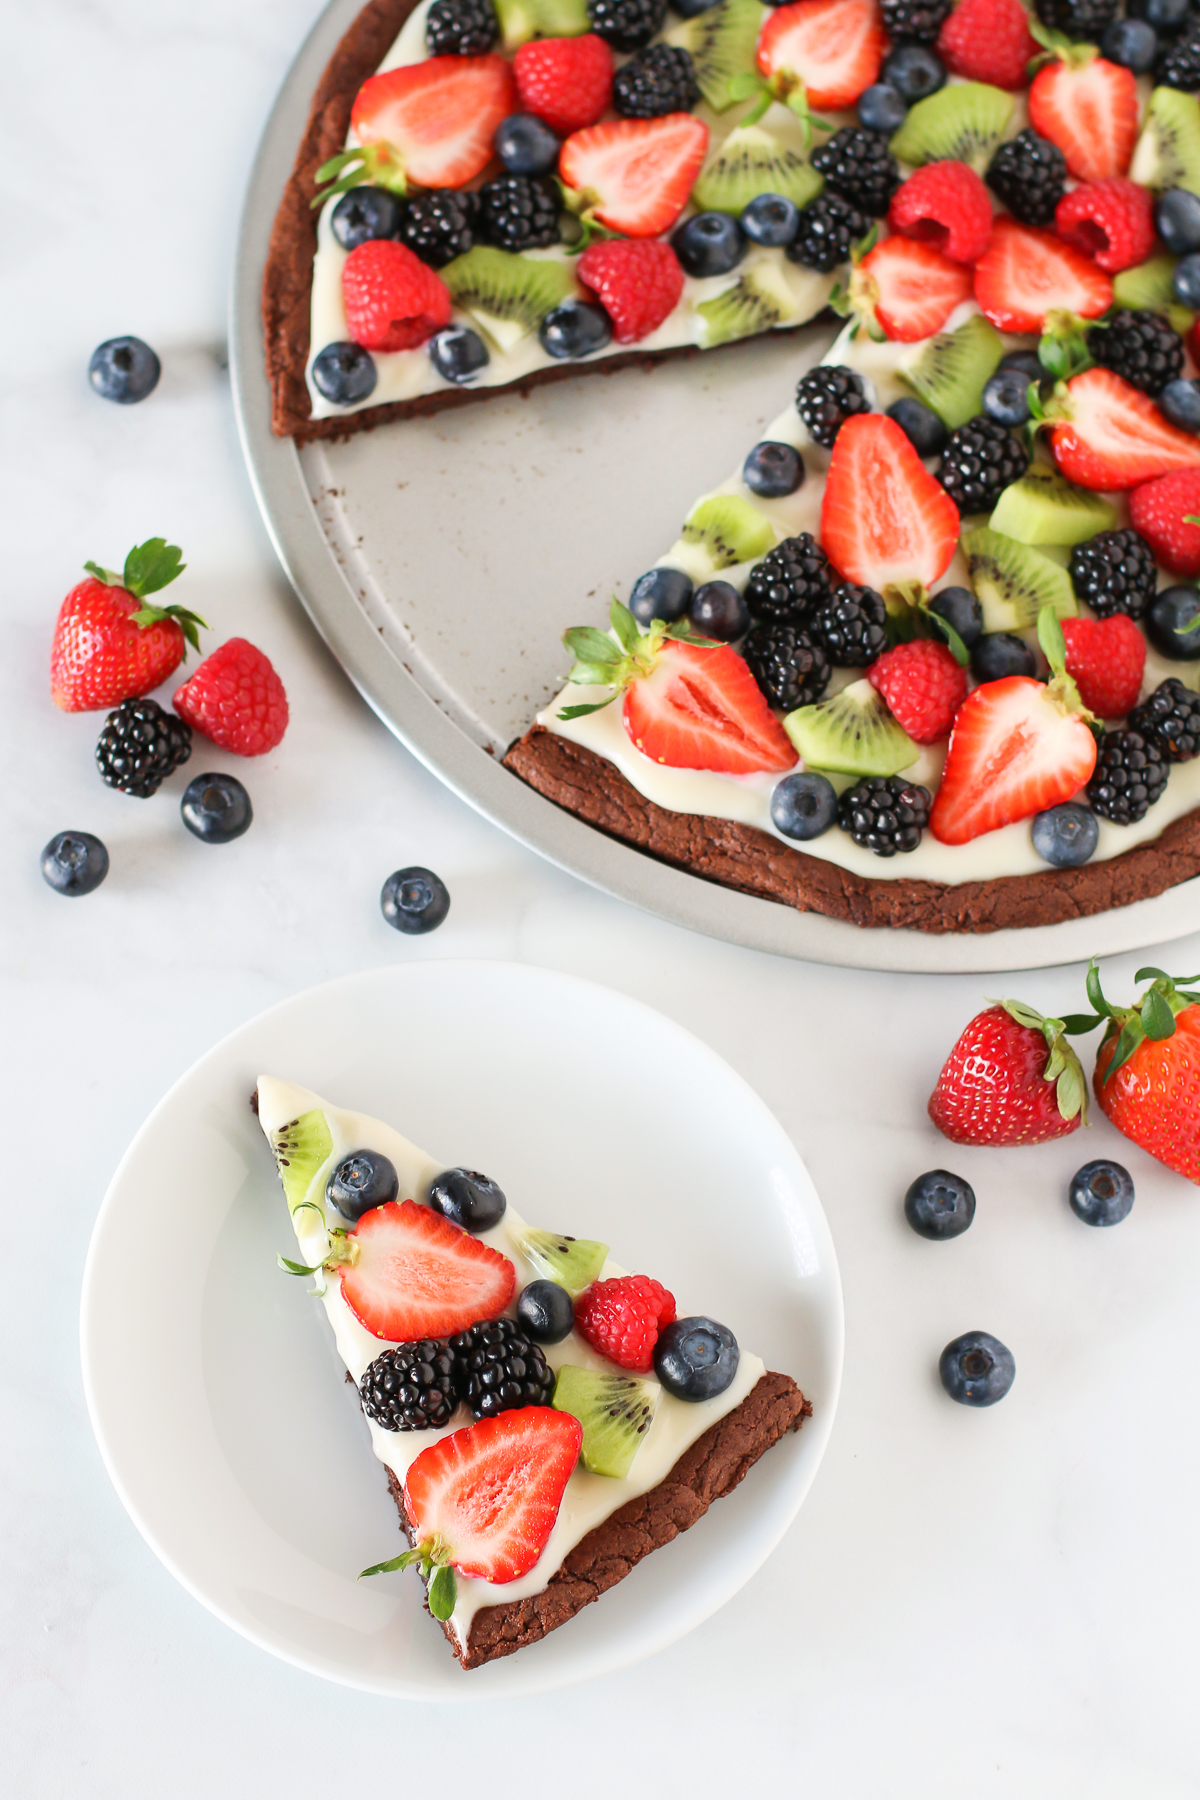 Gluten Free Vegan Brownie Fruit Pizza. Chewy brownie crust with a cream cheese frosting, loaded with fresh fruit. A beautiful dessert pizza!